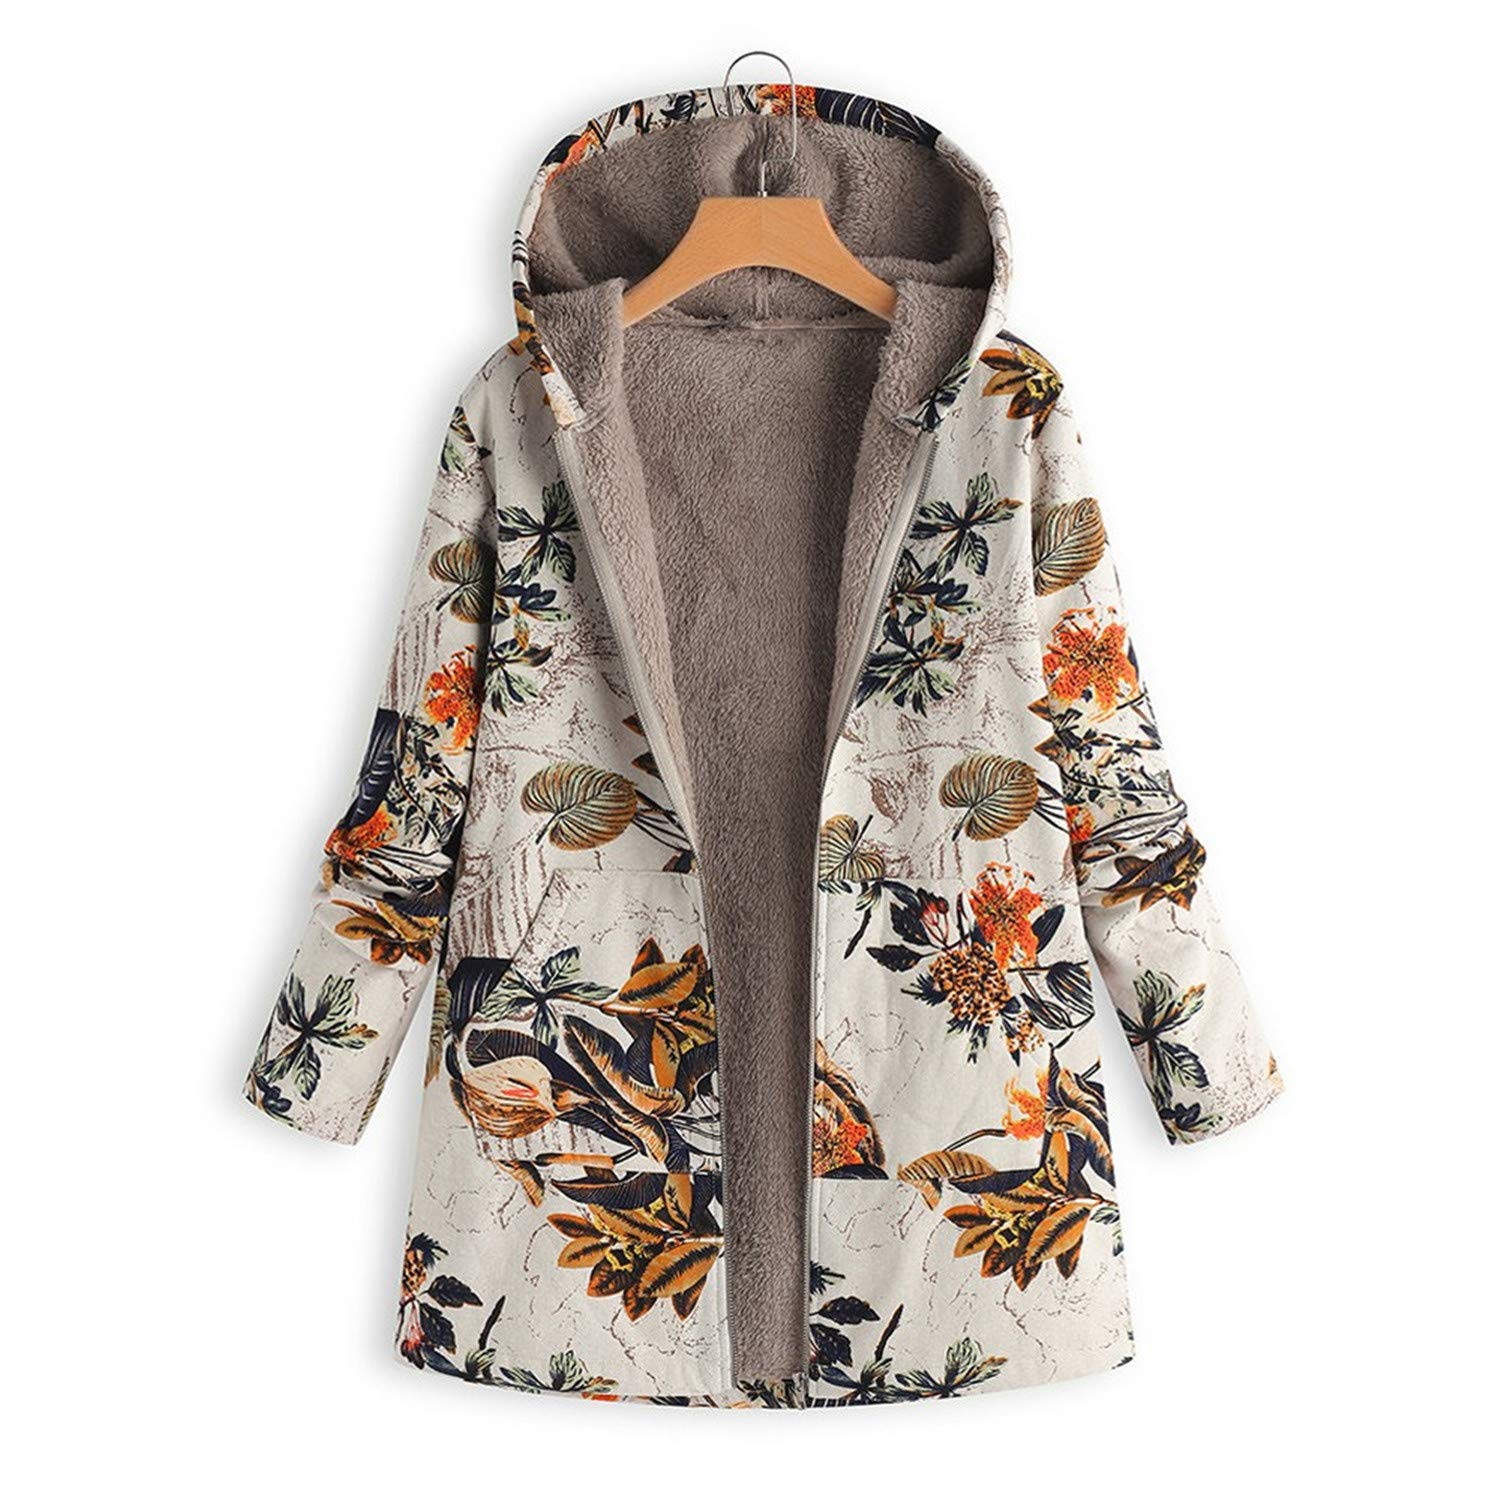 Amazon.com: Coats and Jackets Women Winter Warm Outwear Fashion Floral Print Hooded Pockets Vintage Oversize Coats New Chamarras De Mujer: Clothing